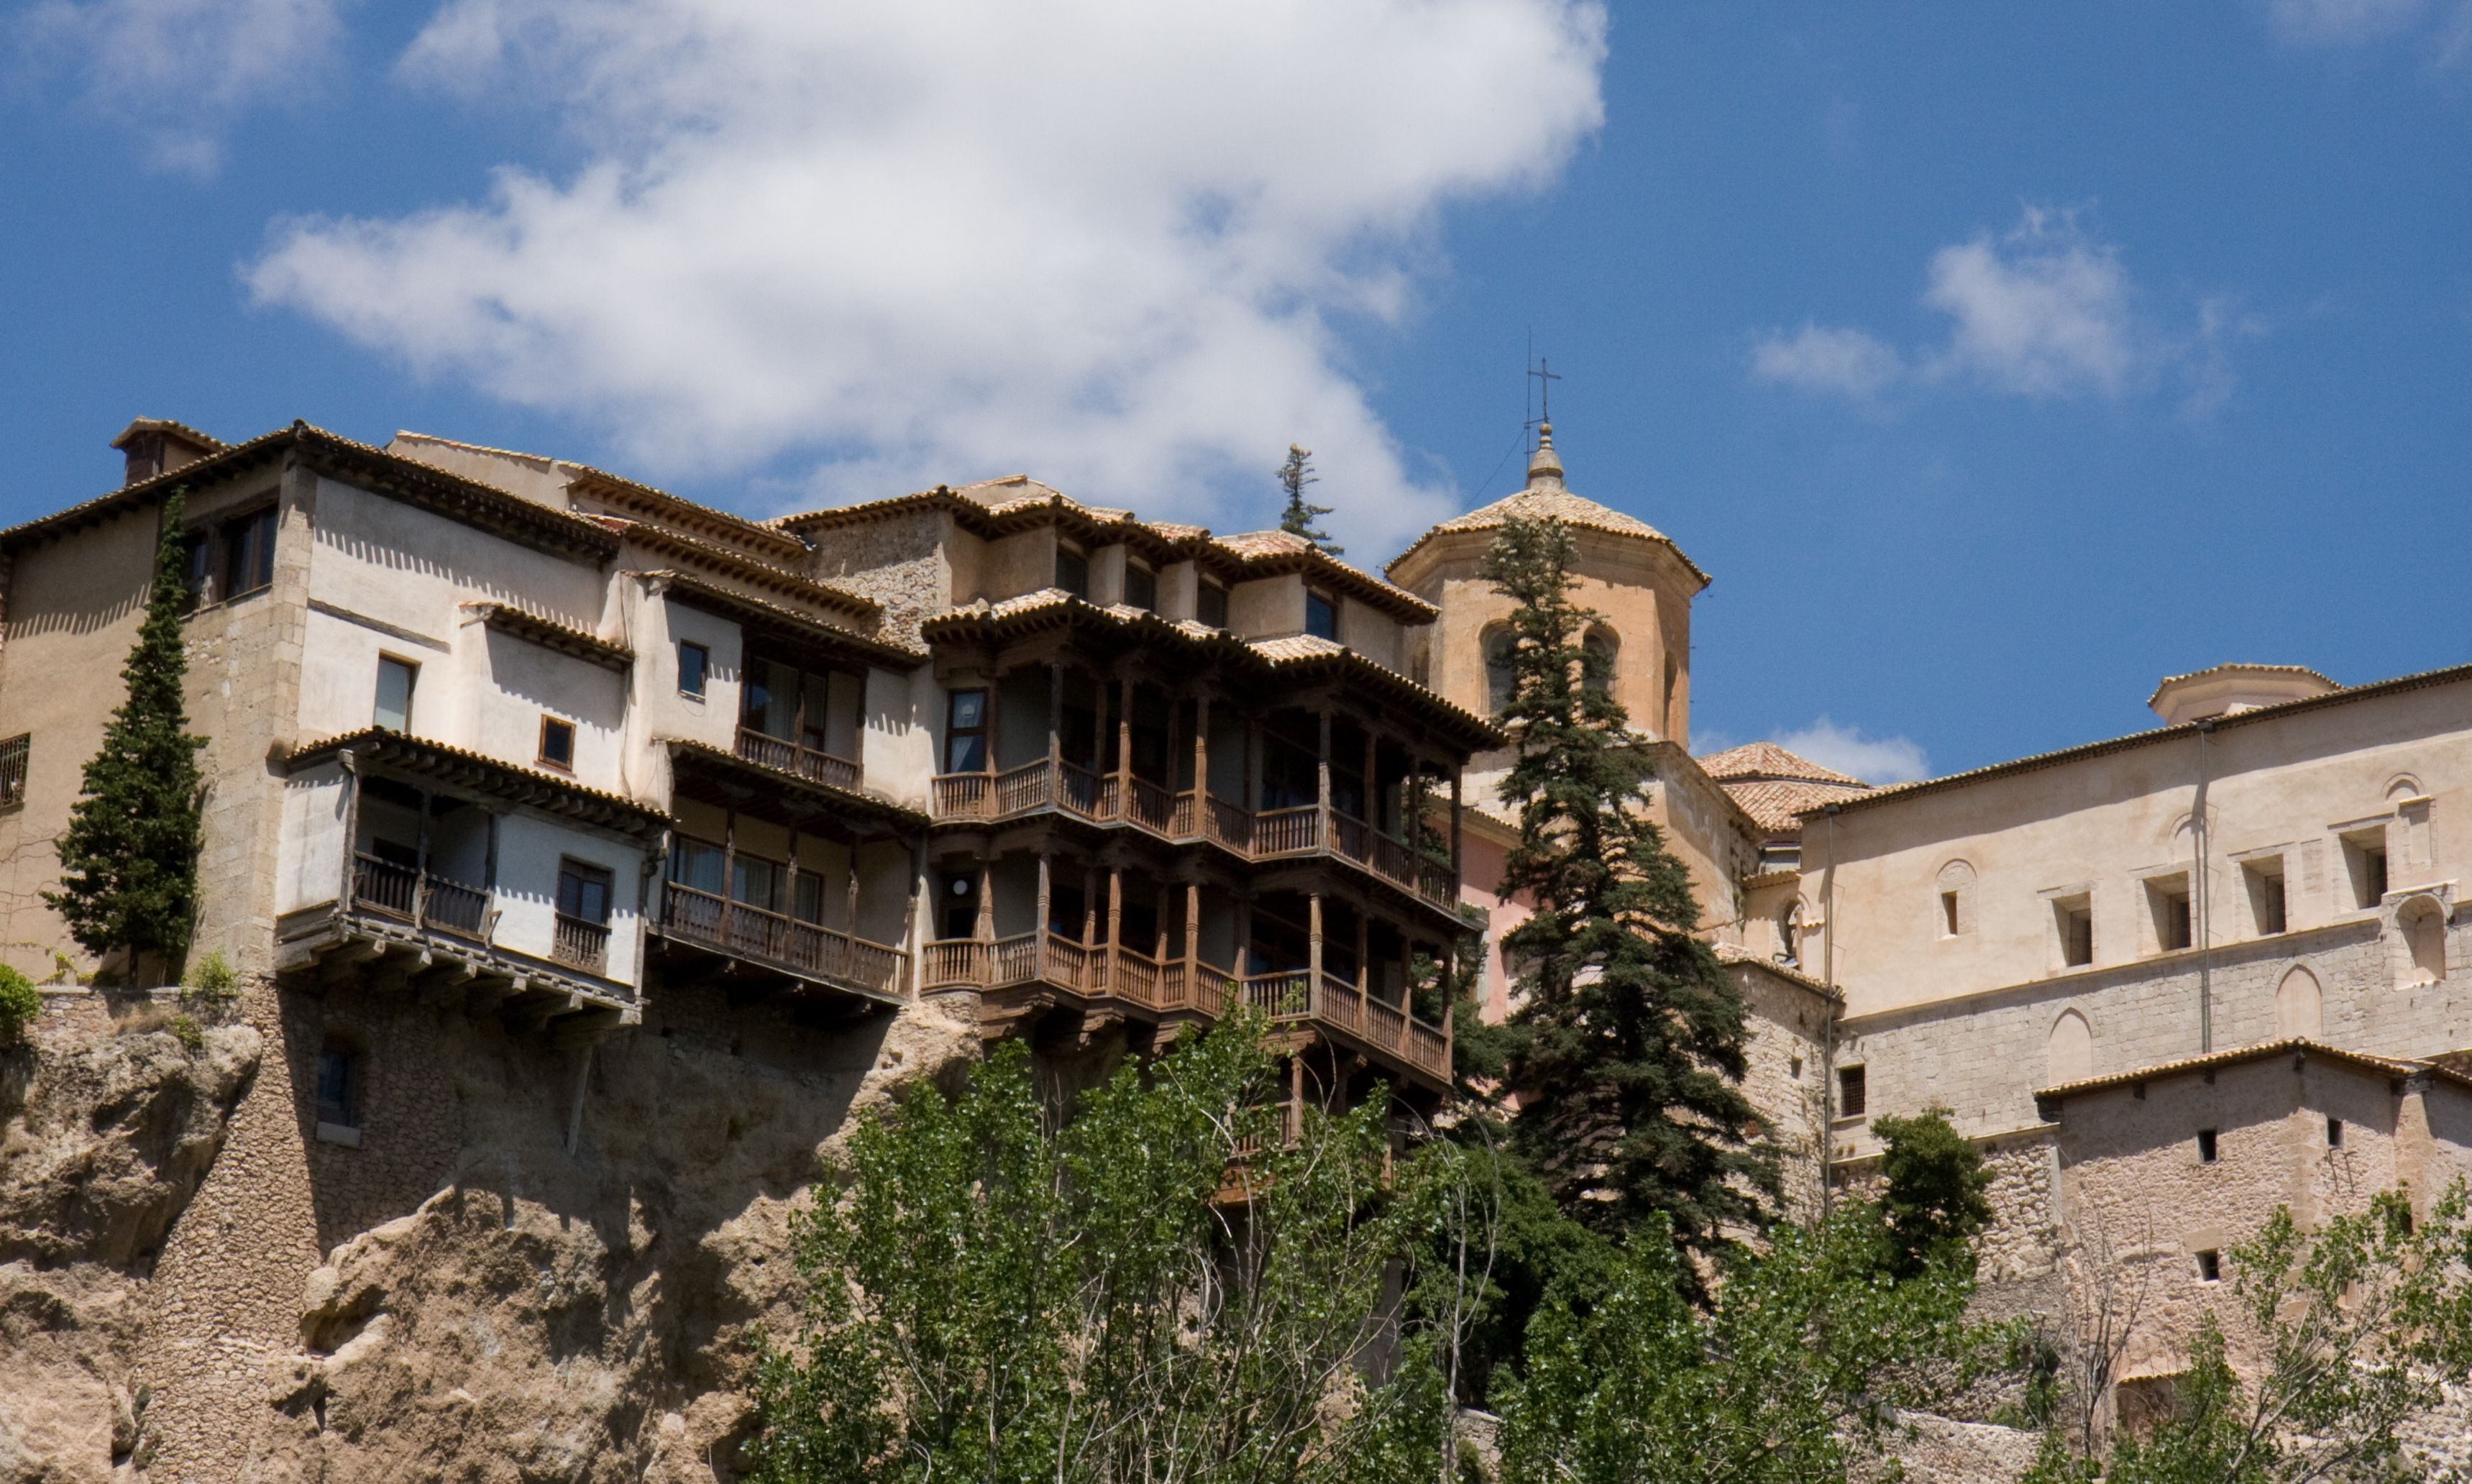 Houses in Spain | Description Cuenca, Spain - Hanging houses (Casas Colgadas).jpg